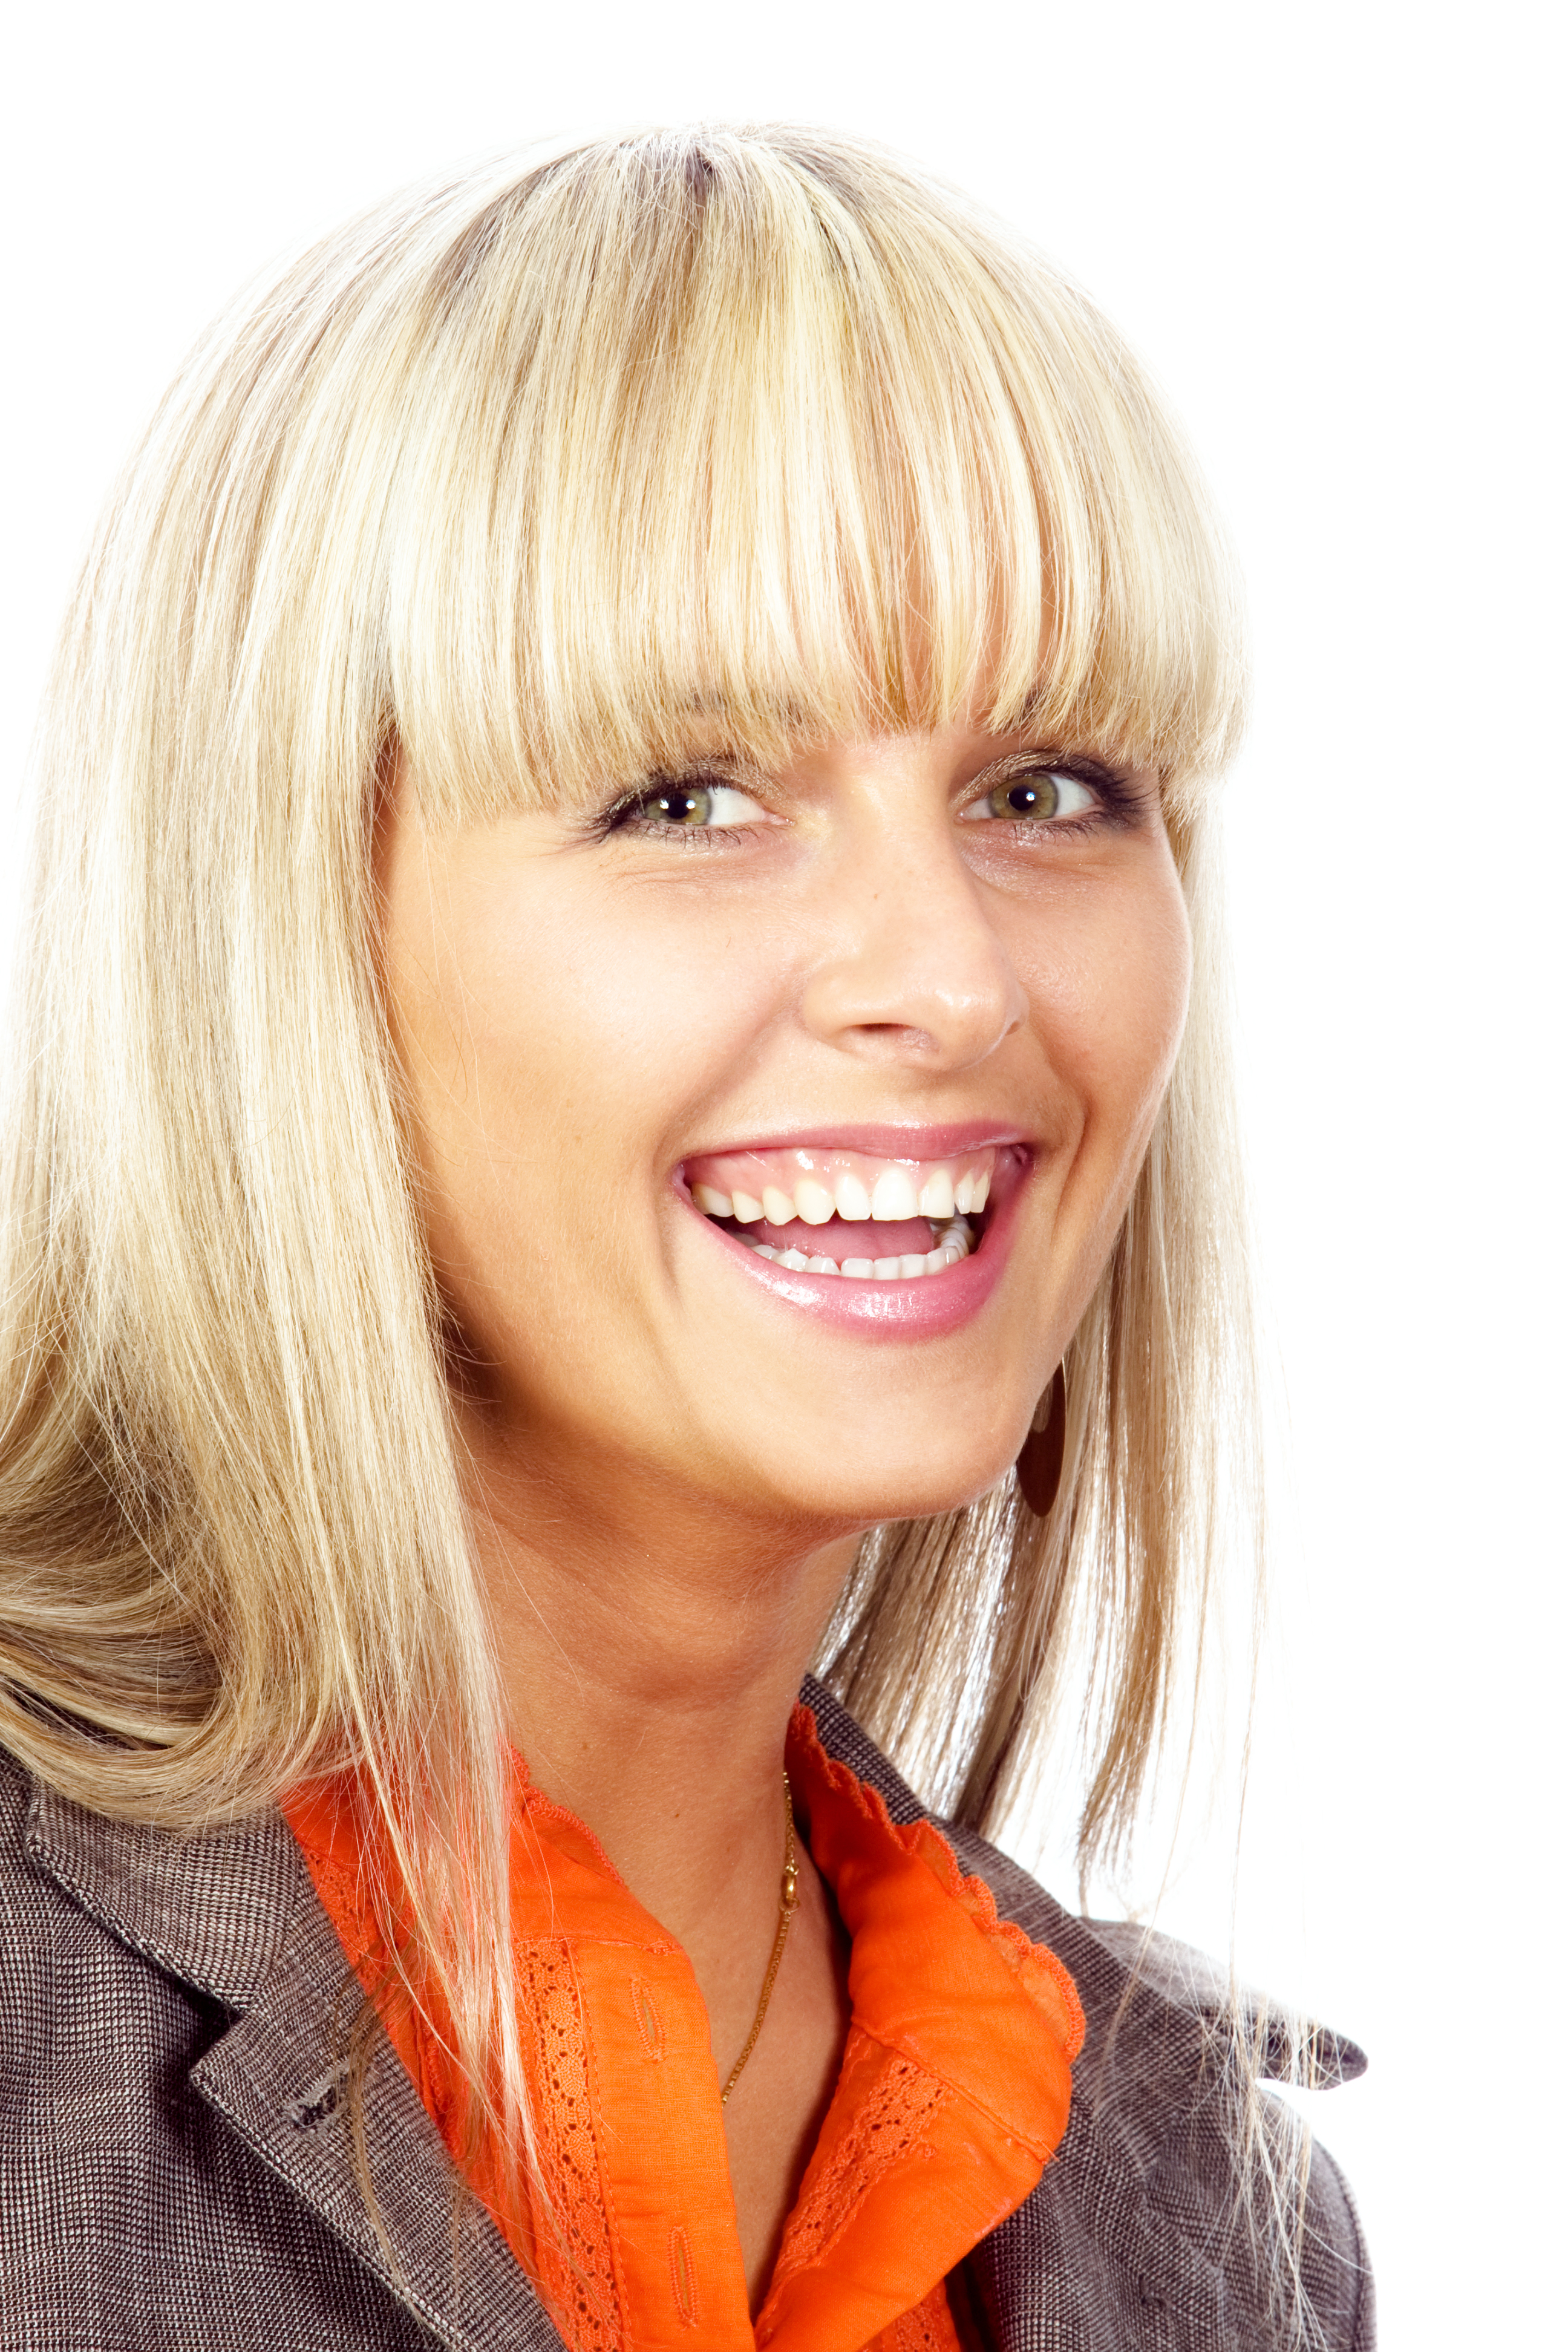 Beautiful girl laughing, Attraction, Sight, Portrait, Pure, HQ Photo